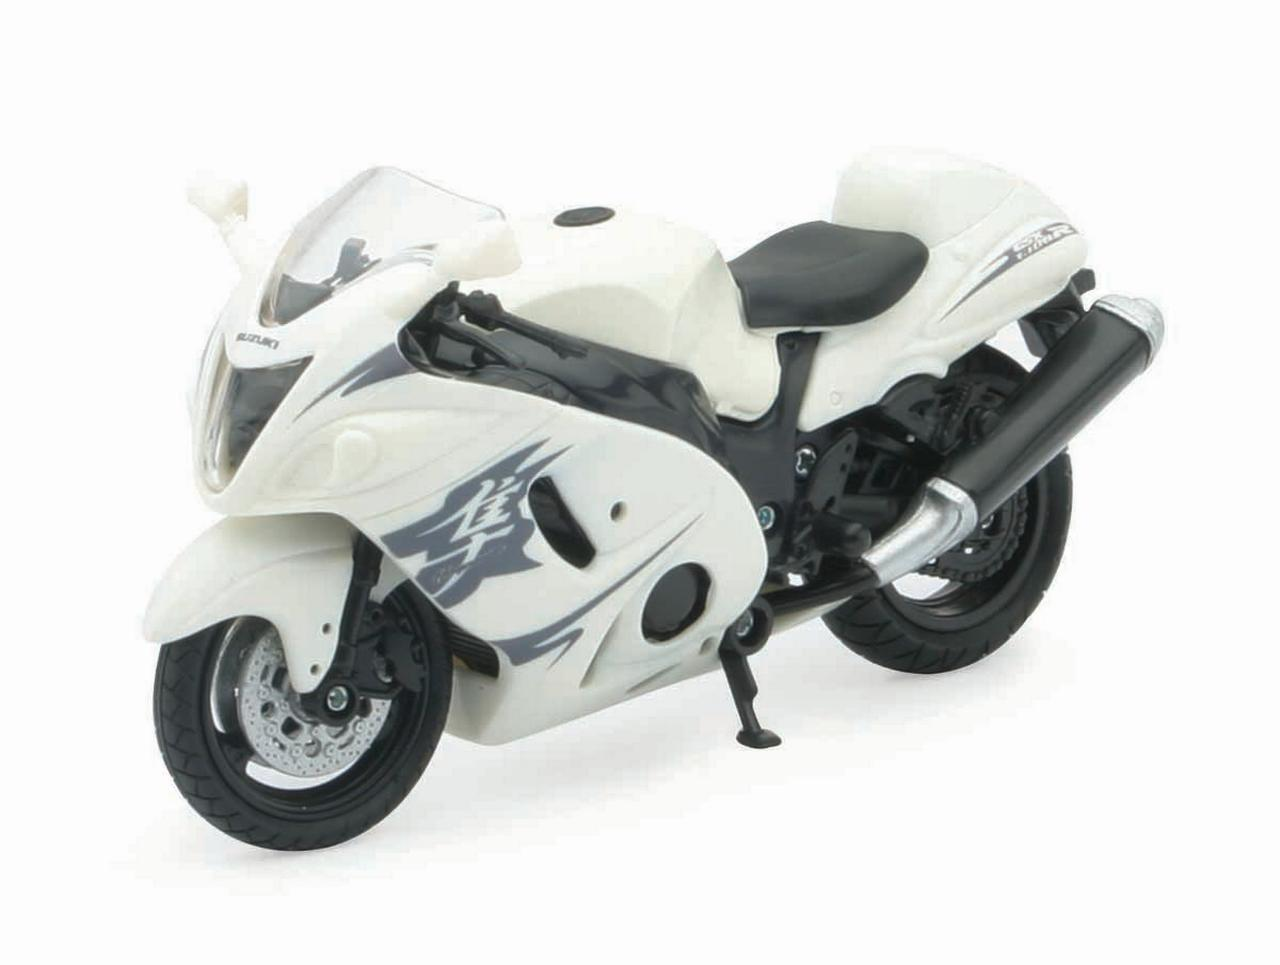 1:18 Scale Die-Cast Motorcycle White Suzuki GSX 1300R by New-Ray Toys Co., Ltd.